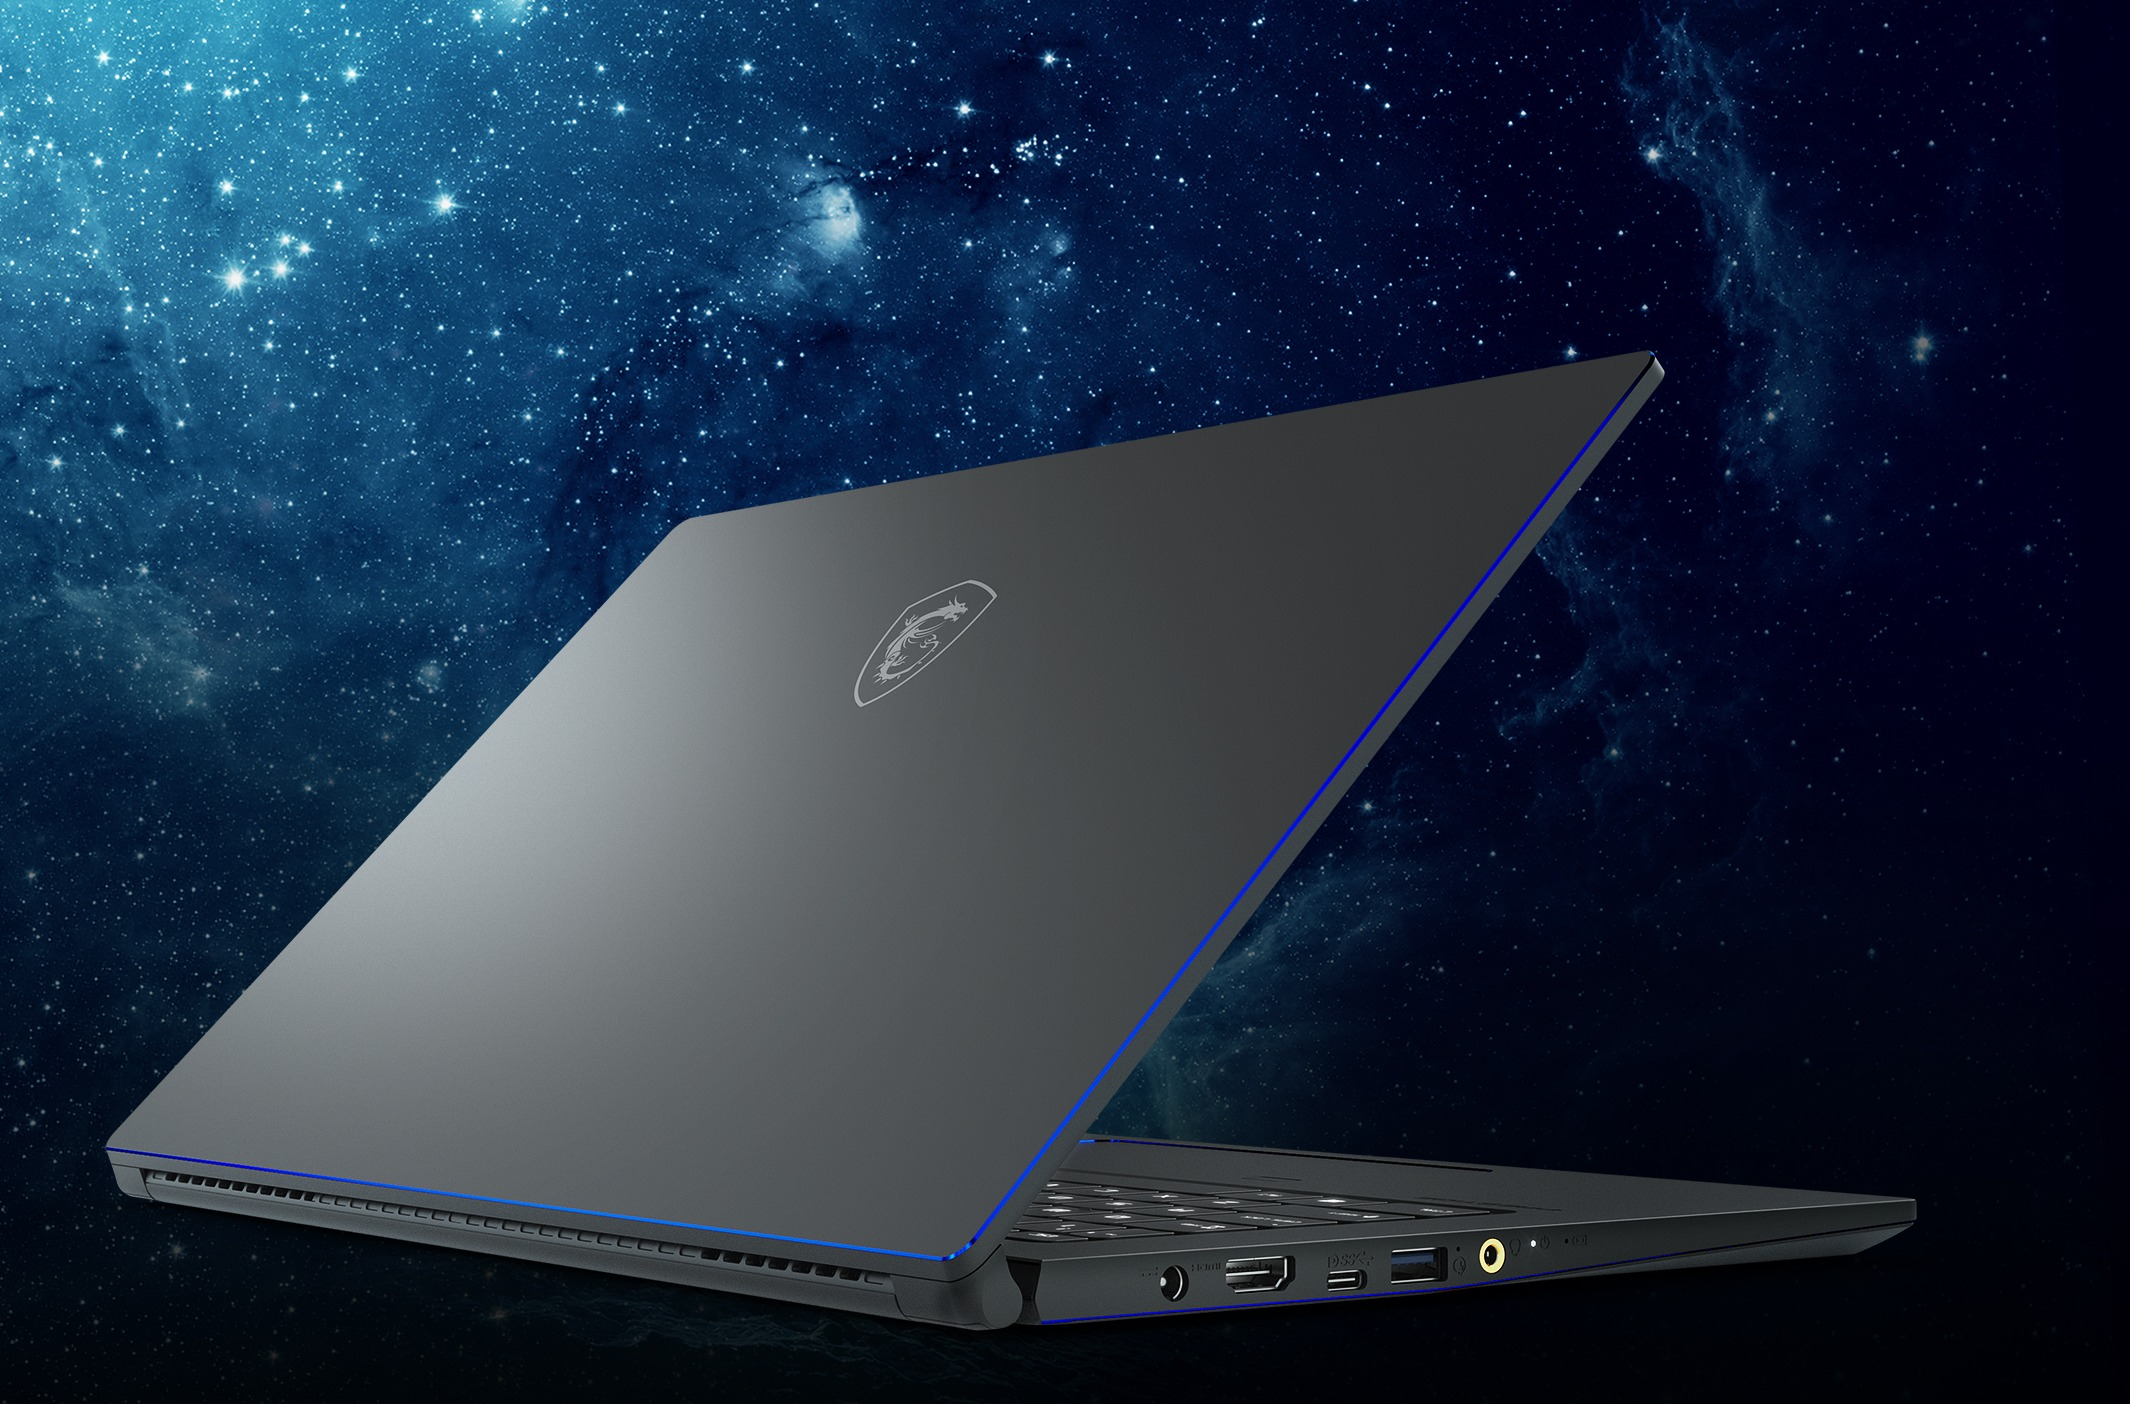 Portable, powerful and quiet, MSI's PS63 Modern is made for